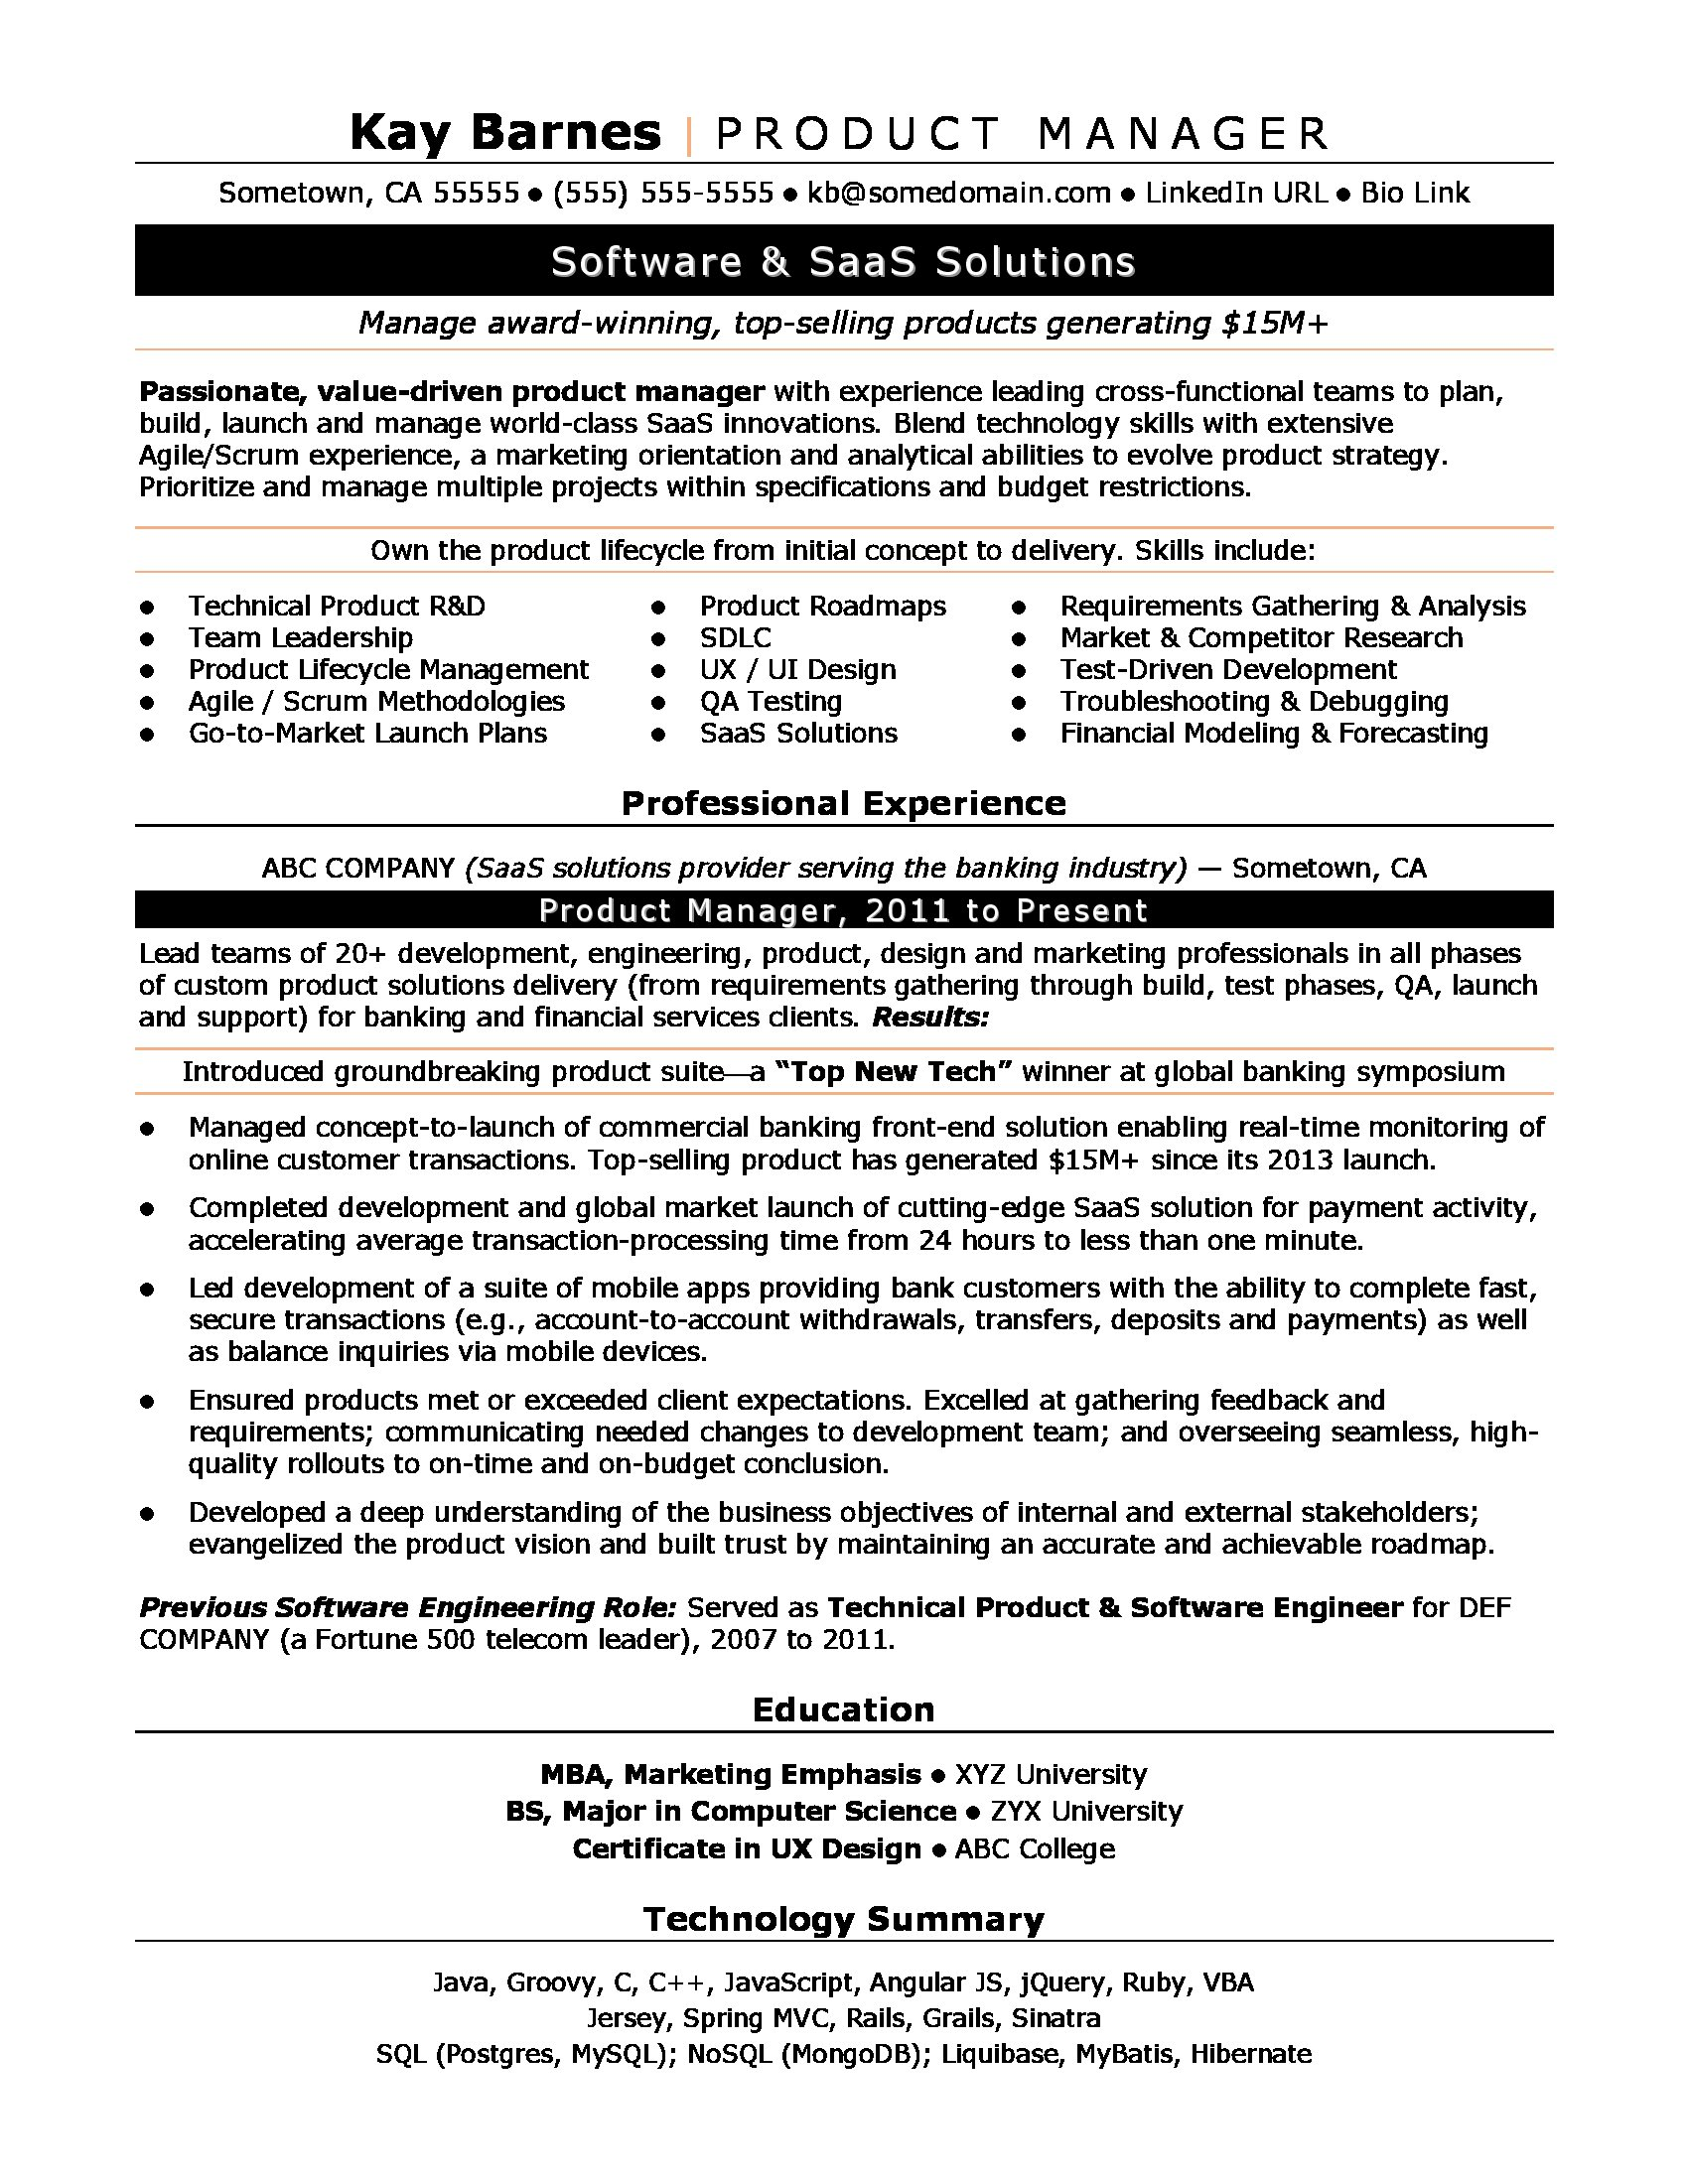 product manager resume sample monster template productmanager need free management skills Resume Product Manager Resume Template